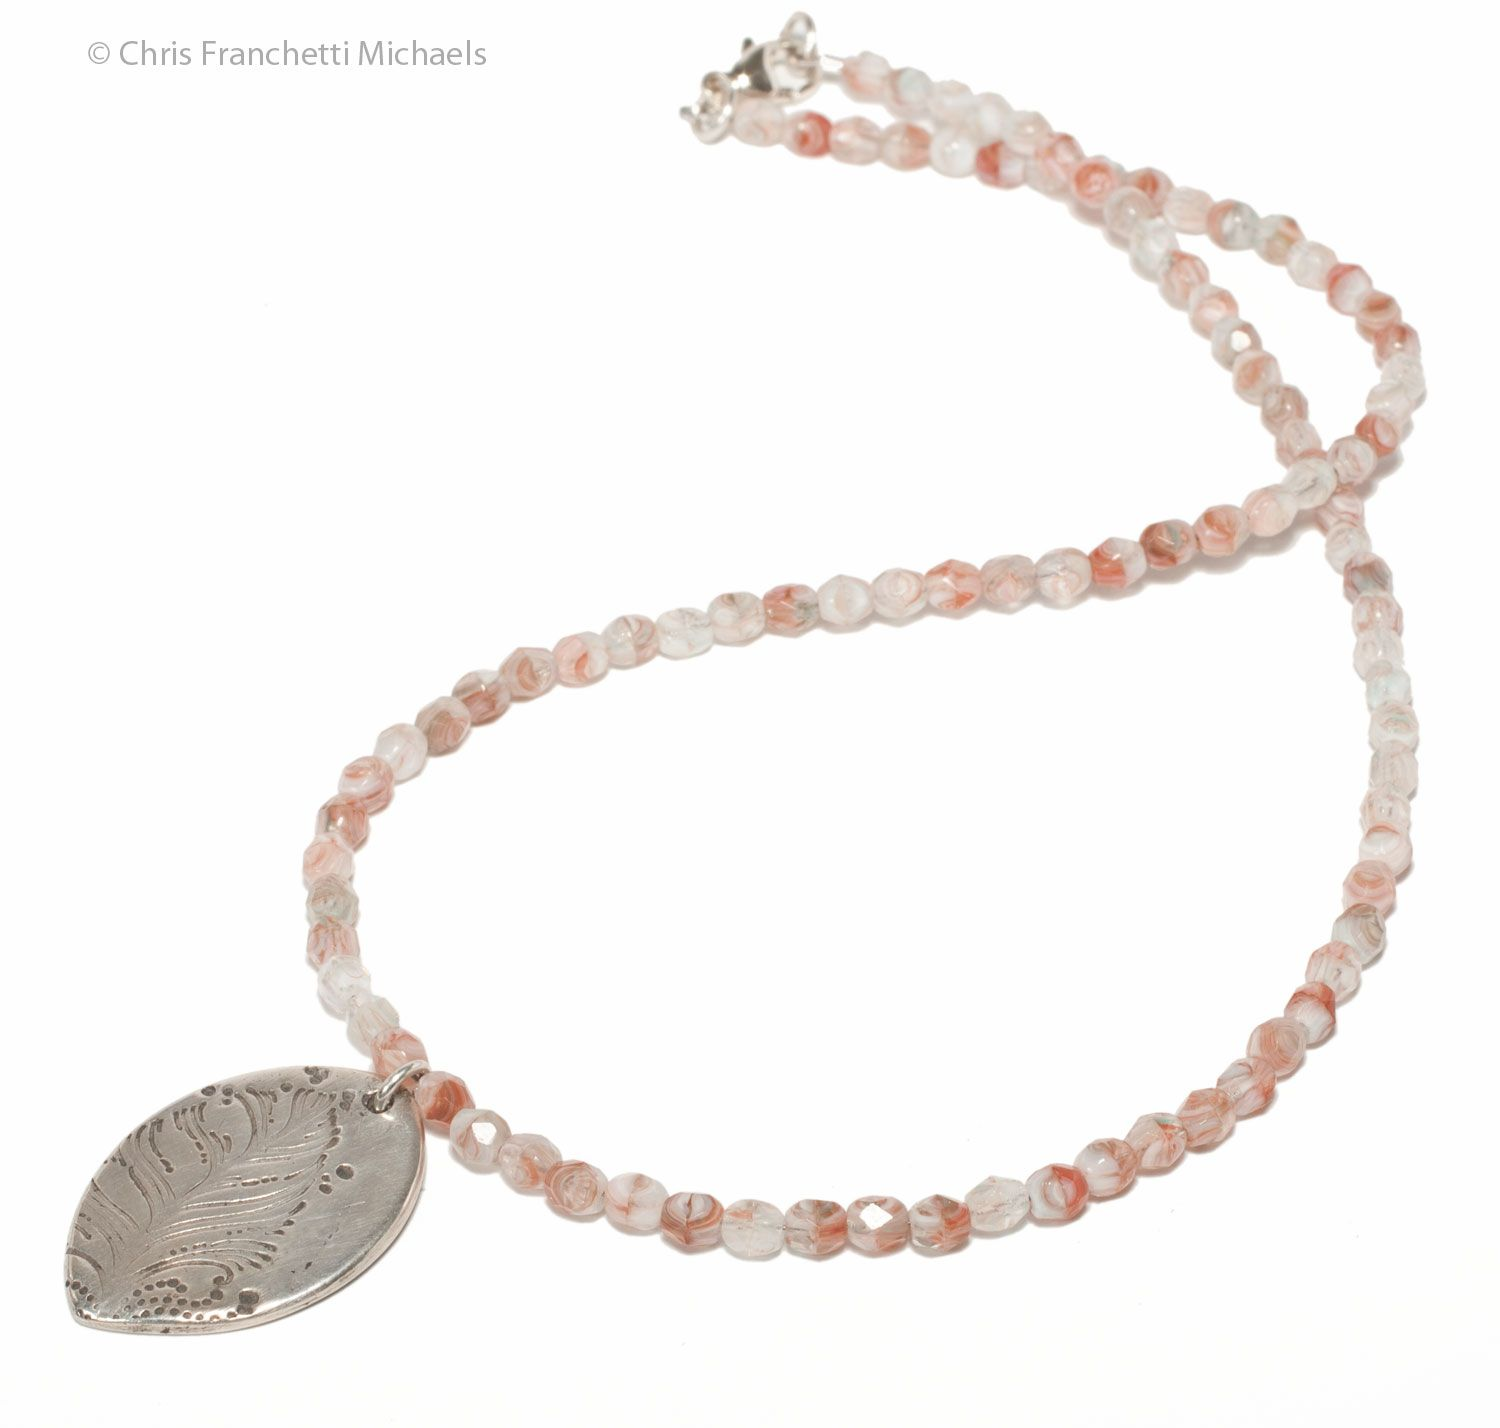 The completed beaded necklace with silver clay pendant.